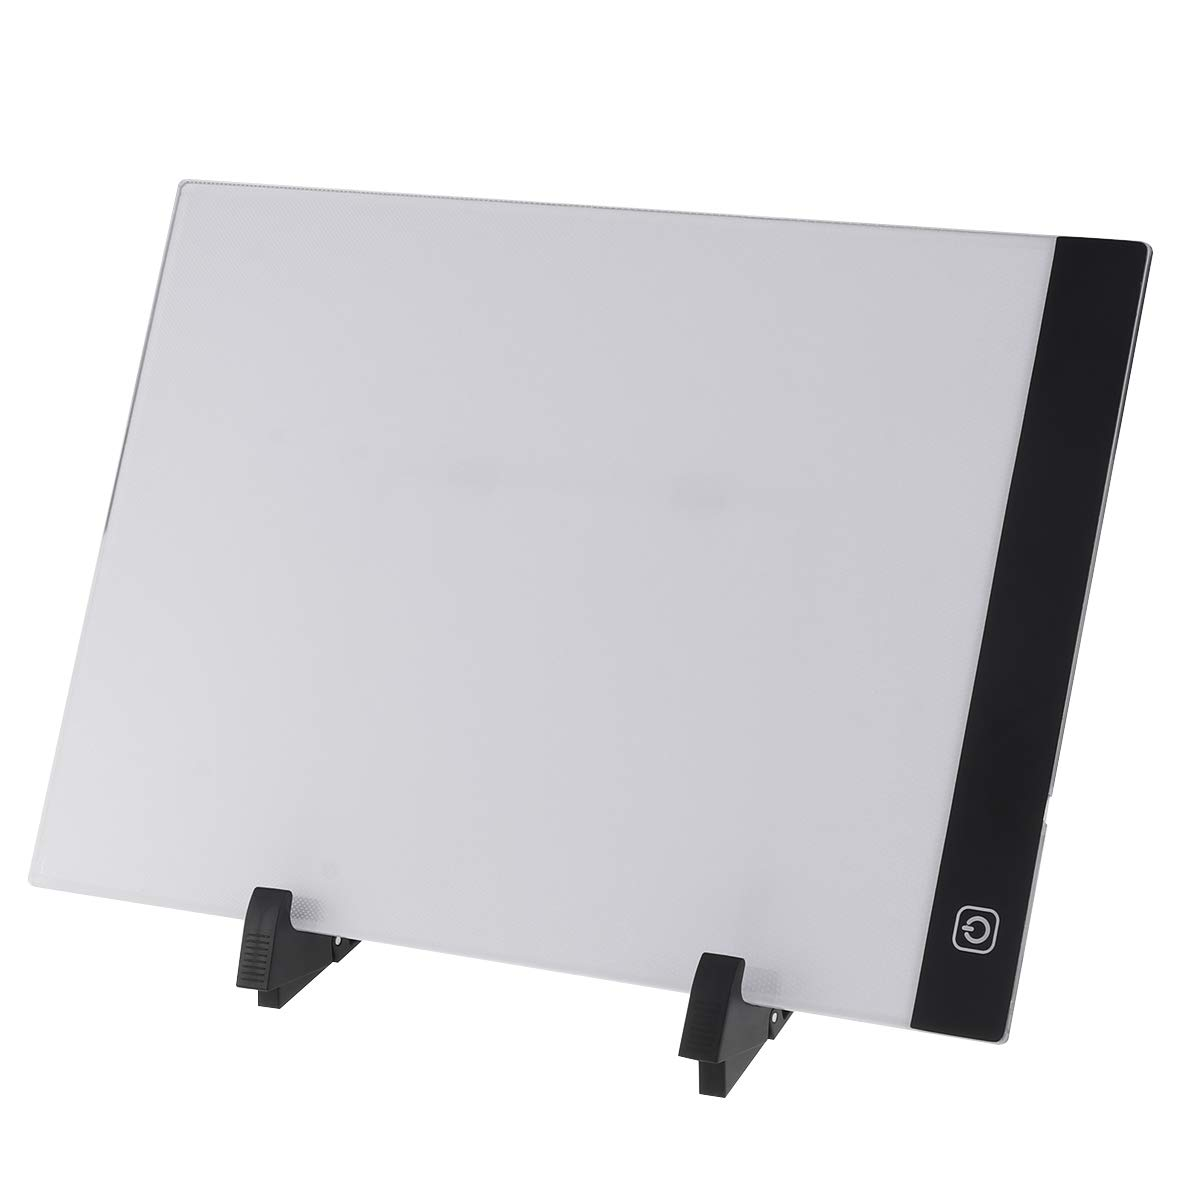 STOBOK Light Drawing Board 1 Set A4 LED Light Box Drawing Sketch Tablet Tracking Artist Backing Plate Diamond Painting Tools for Desktop Table Easel Craft Workstation by STOBOK (Image #5)